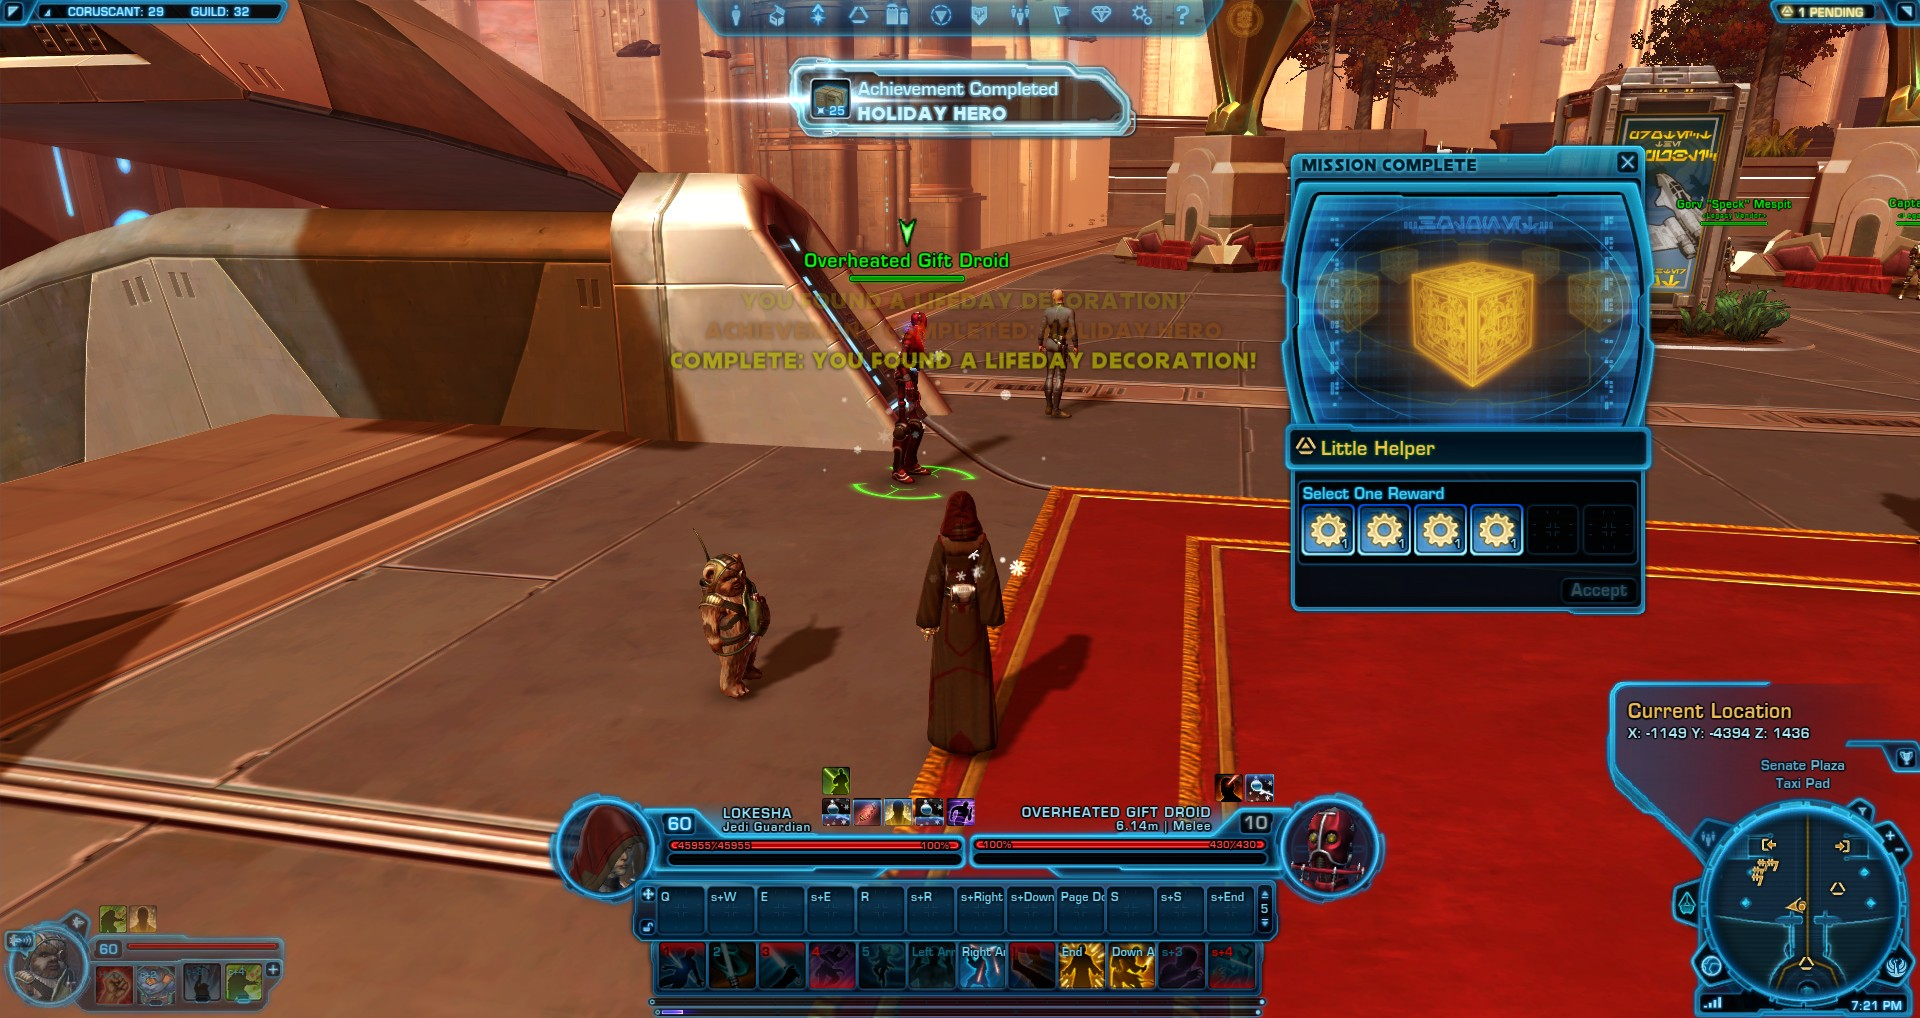 Swtor Life Day Event Coruscant Overheated Gift Droids Location